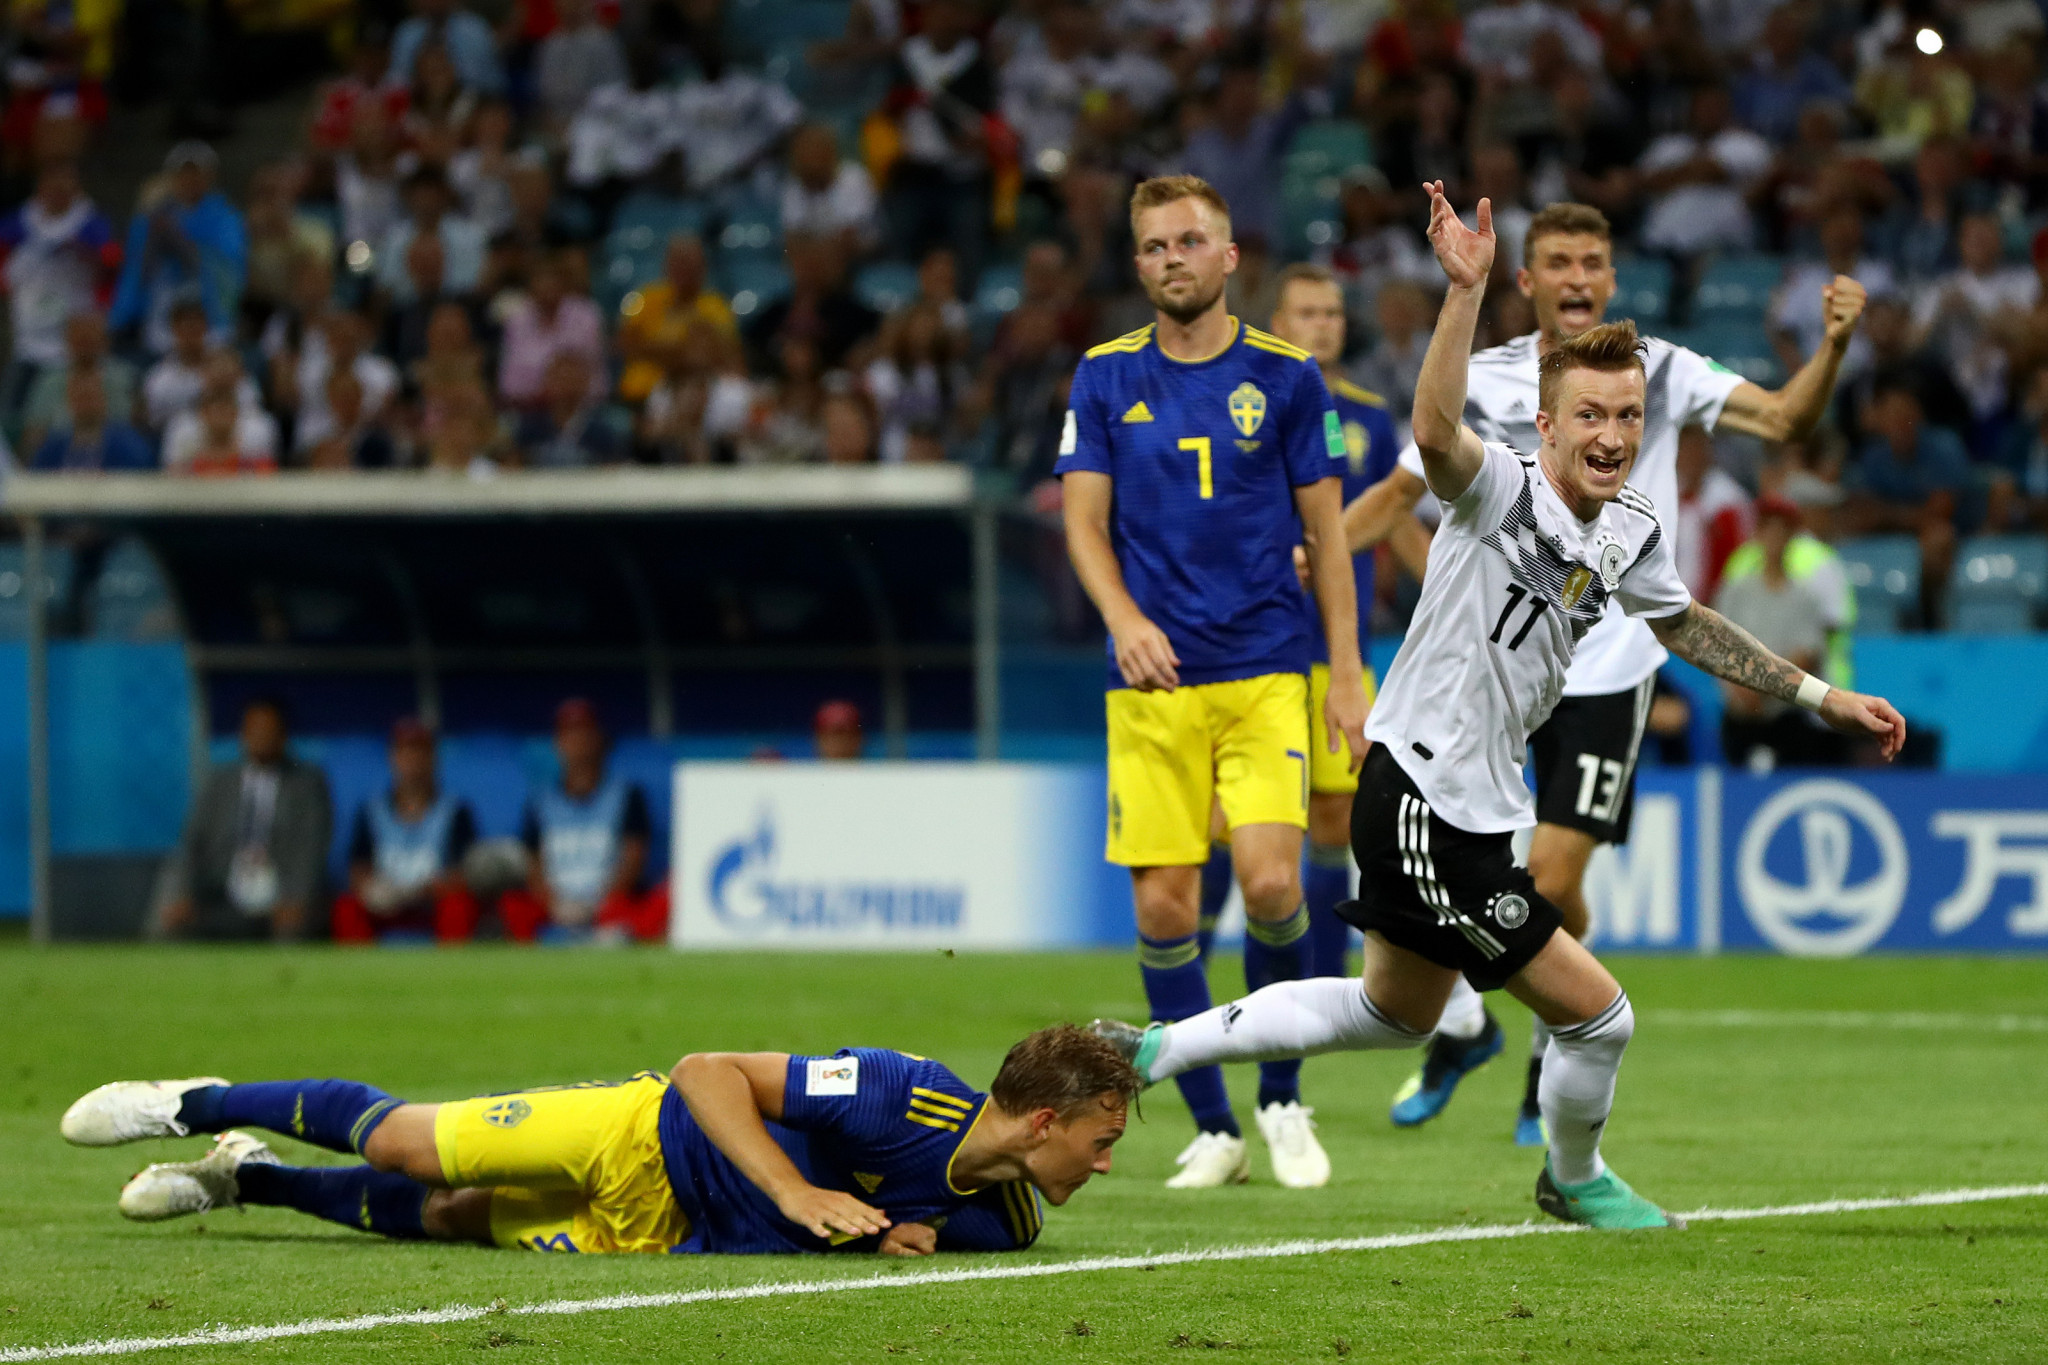 Marco Reus equalised as Germany looked to avoid becoming the fourth straight defending champions to suffer group stage elimination ©Getty Images